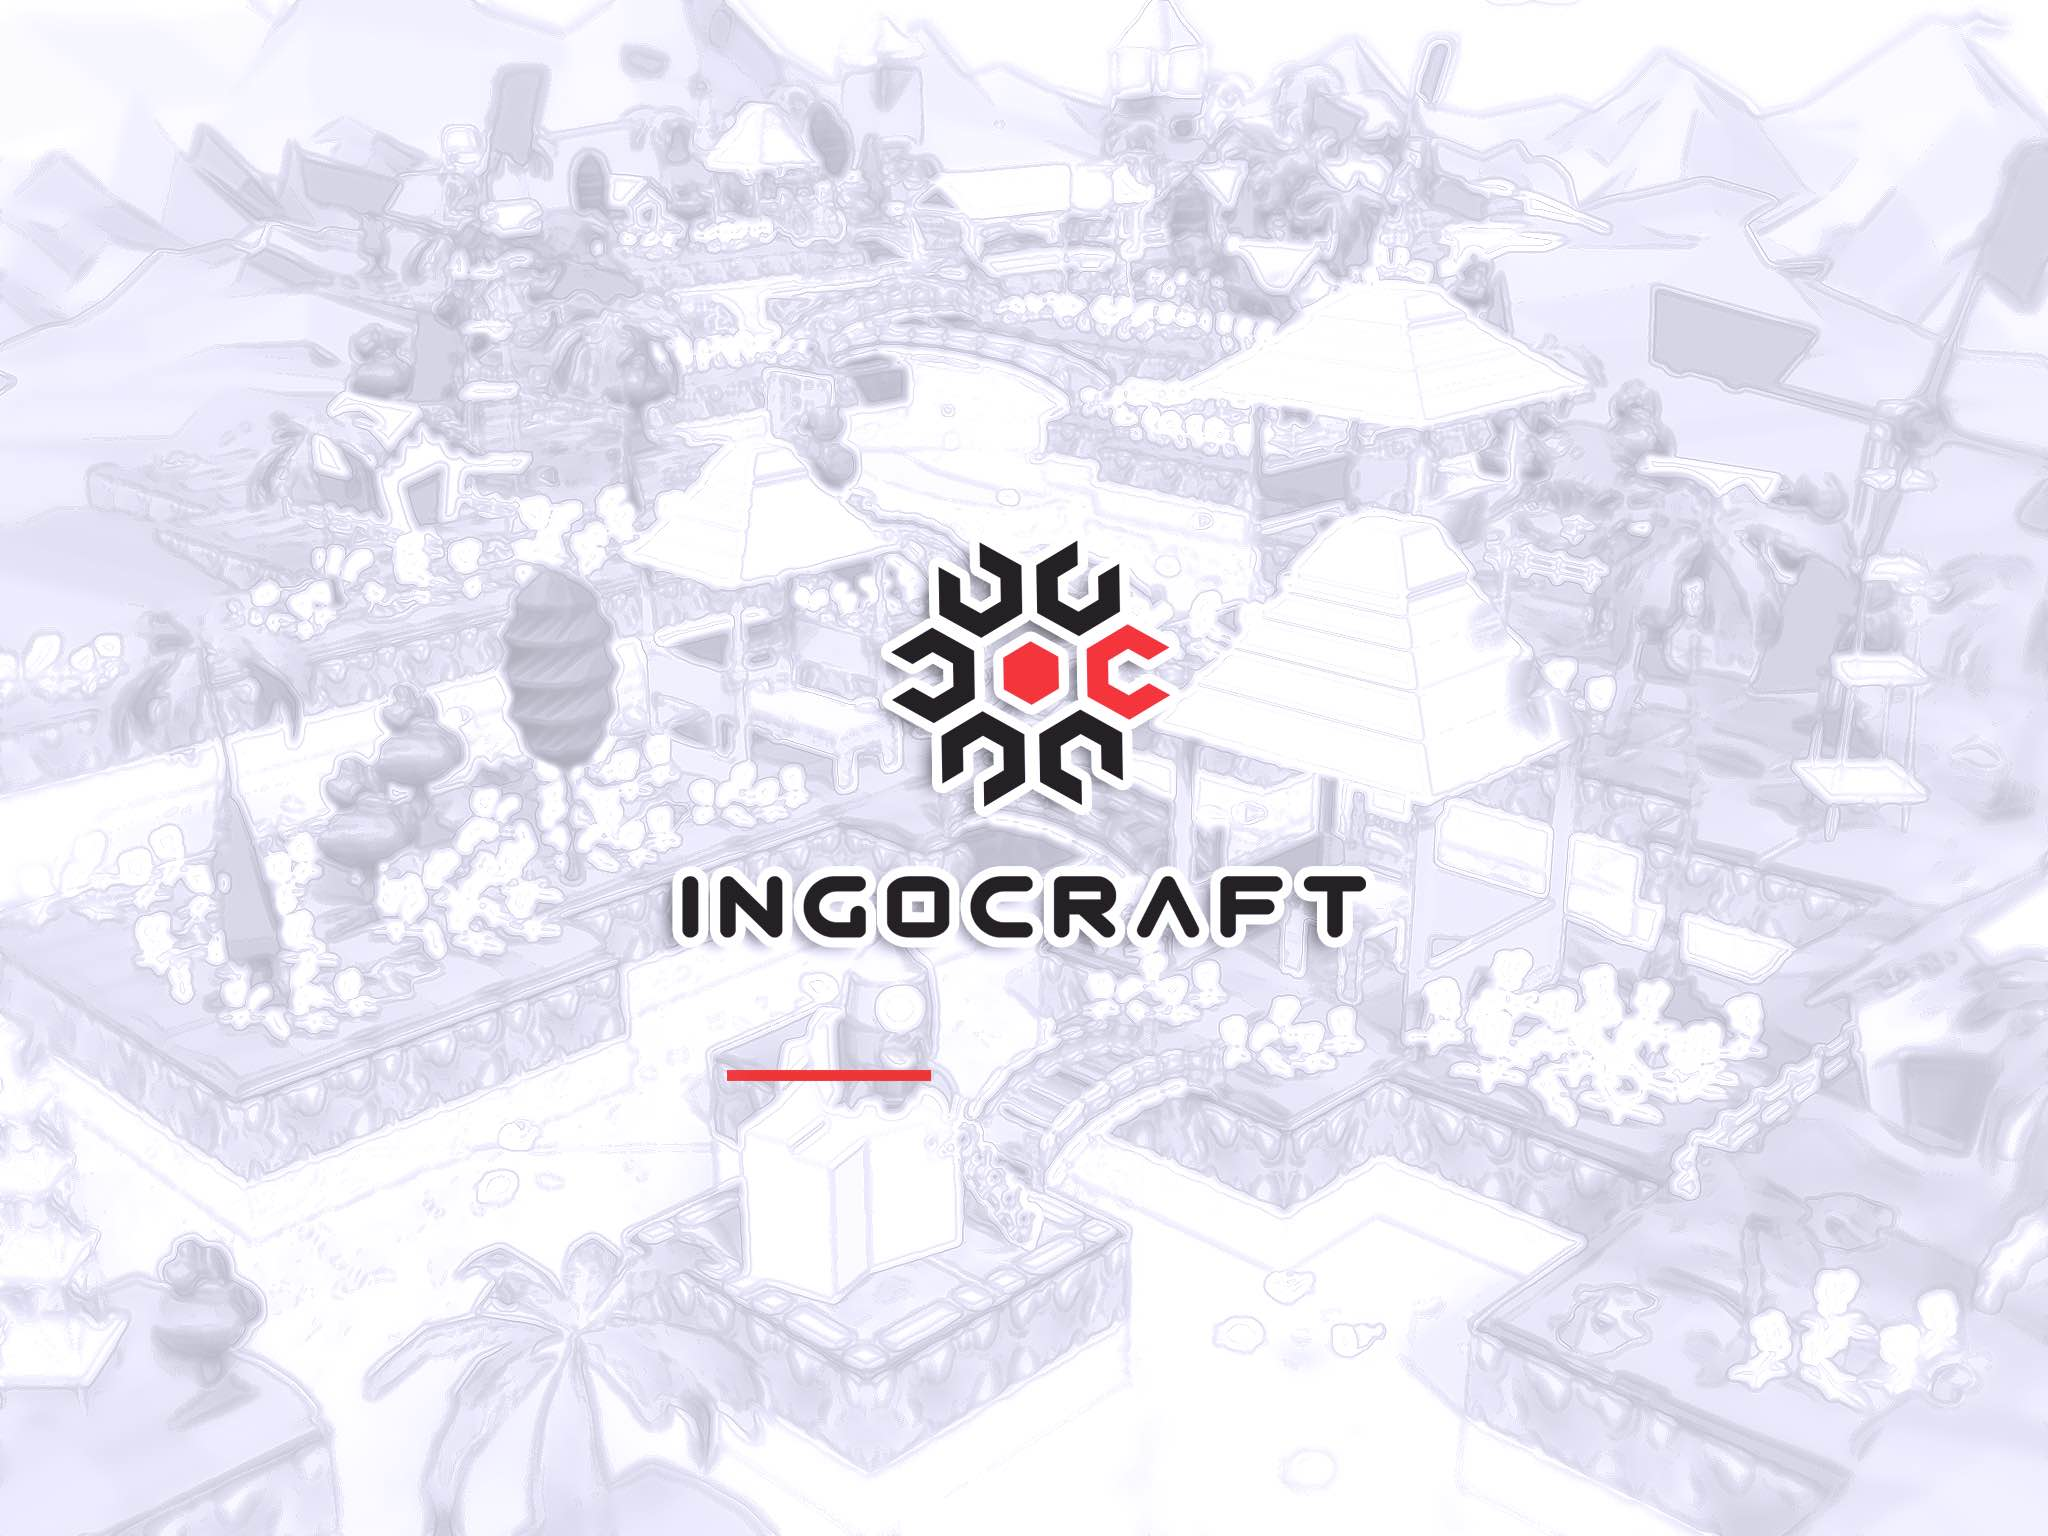 Get It Now: The 'Ingocraft' App Is Free